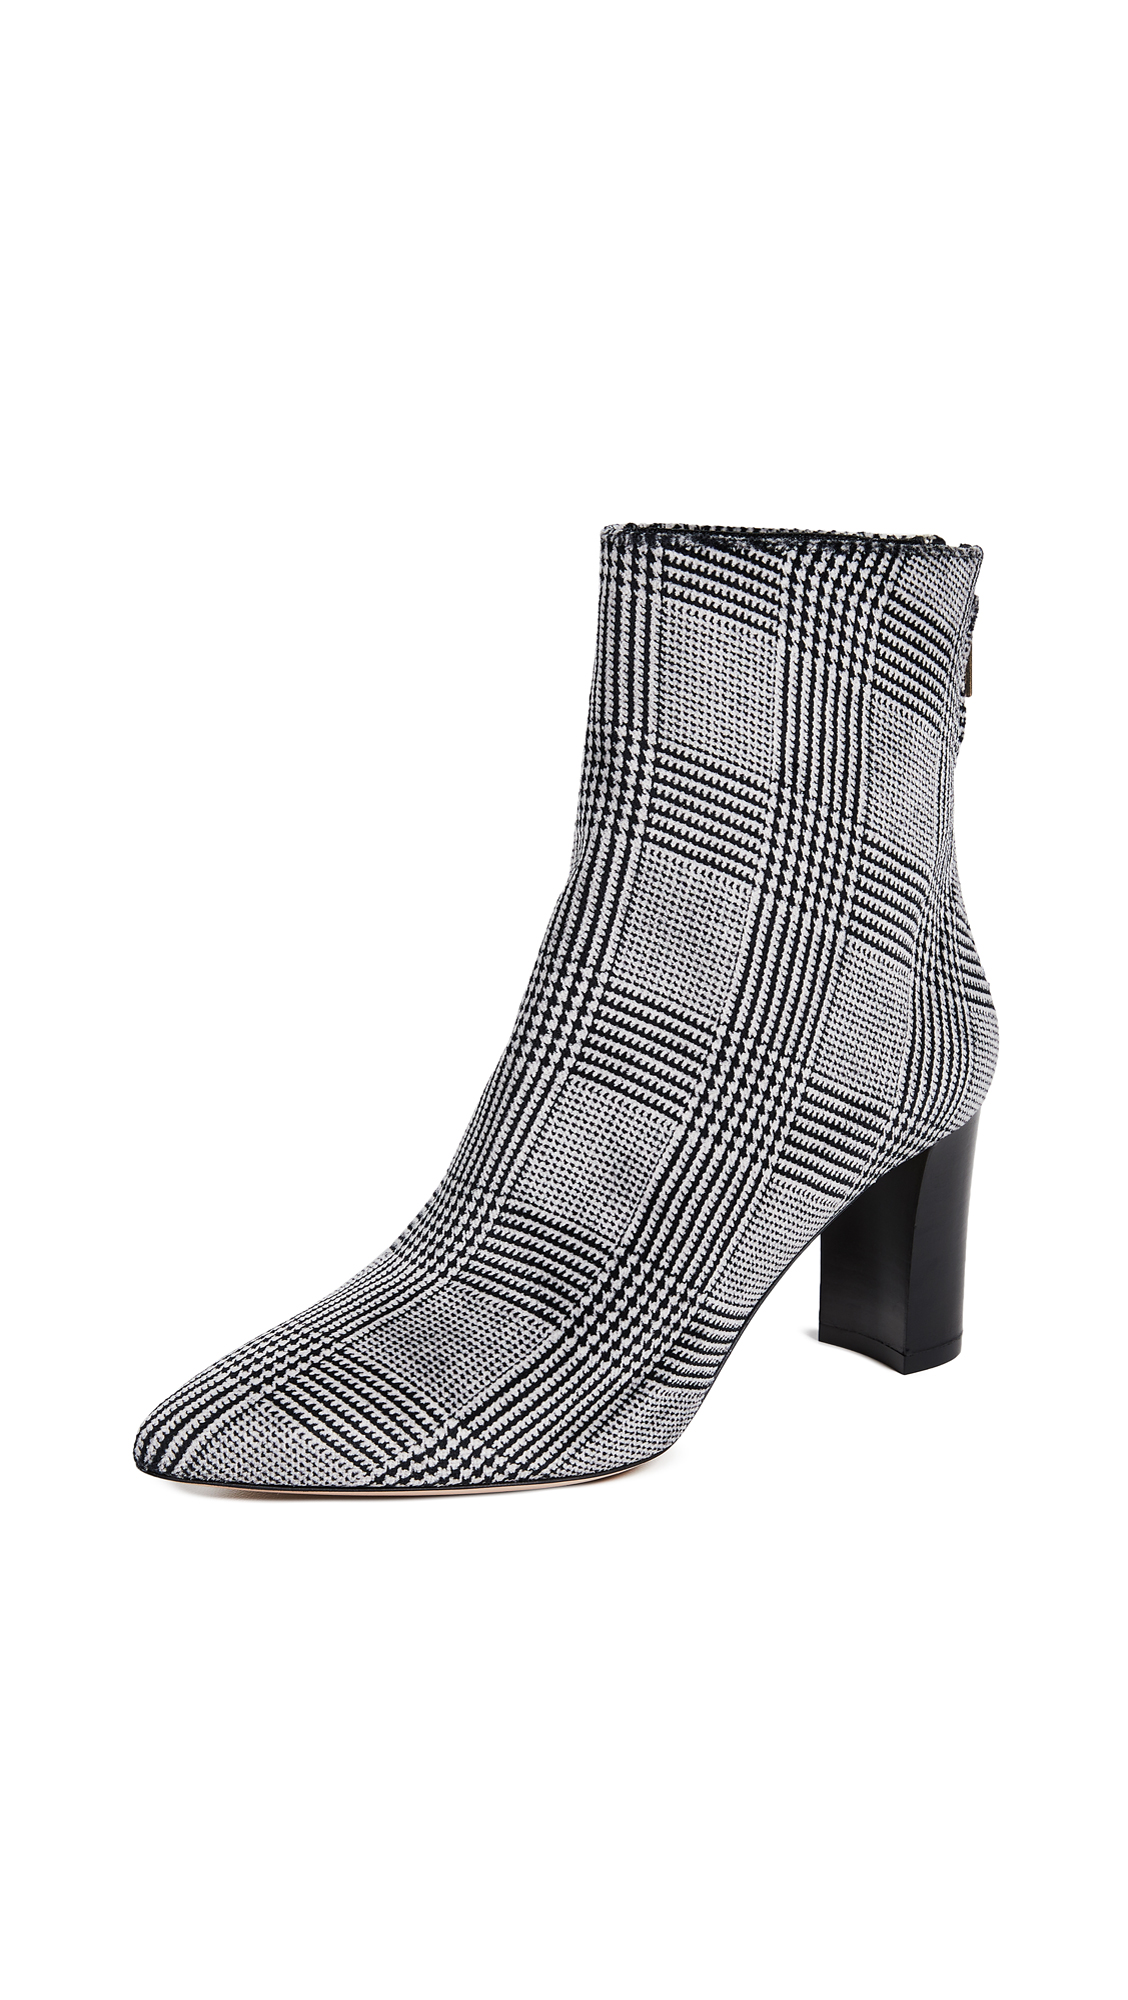 Club Monaco Aaylina Booties - Black/White